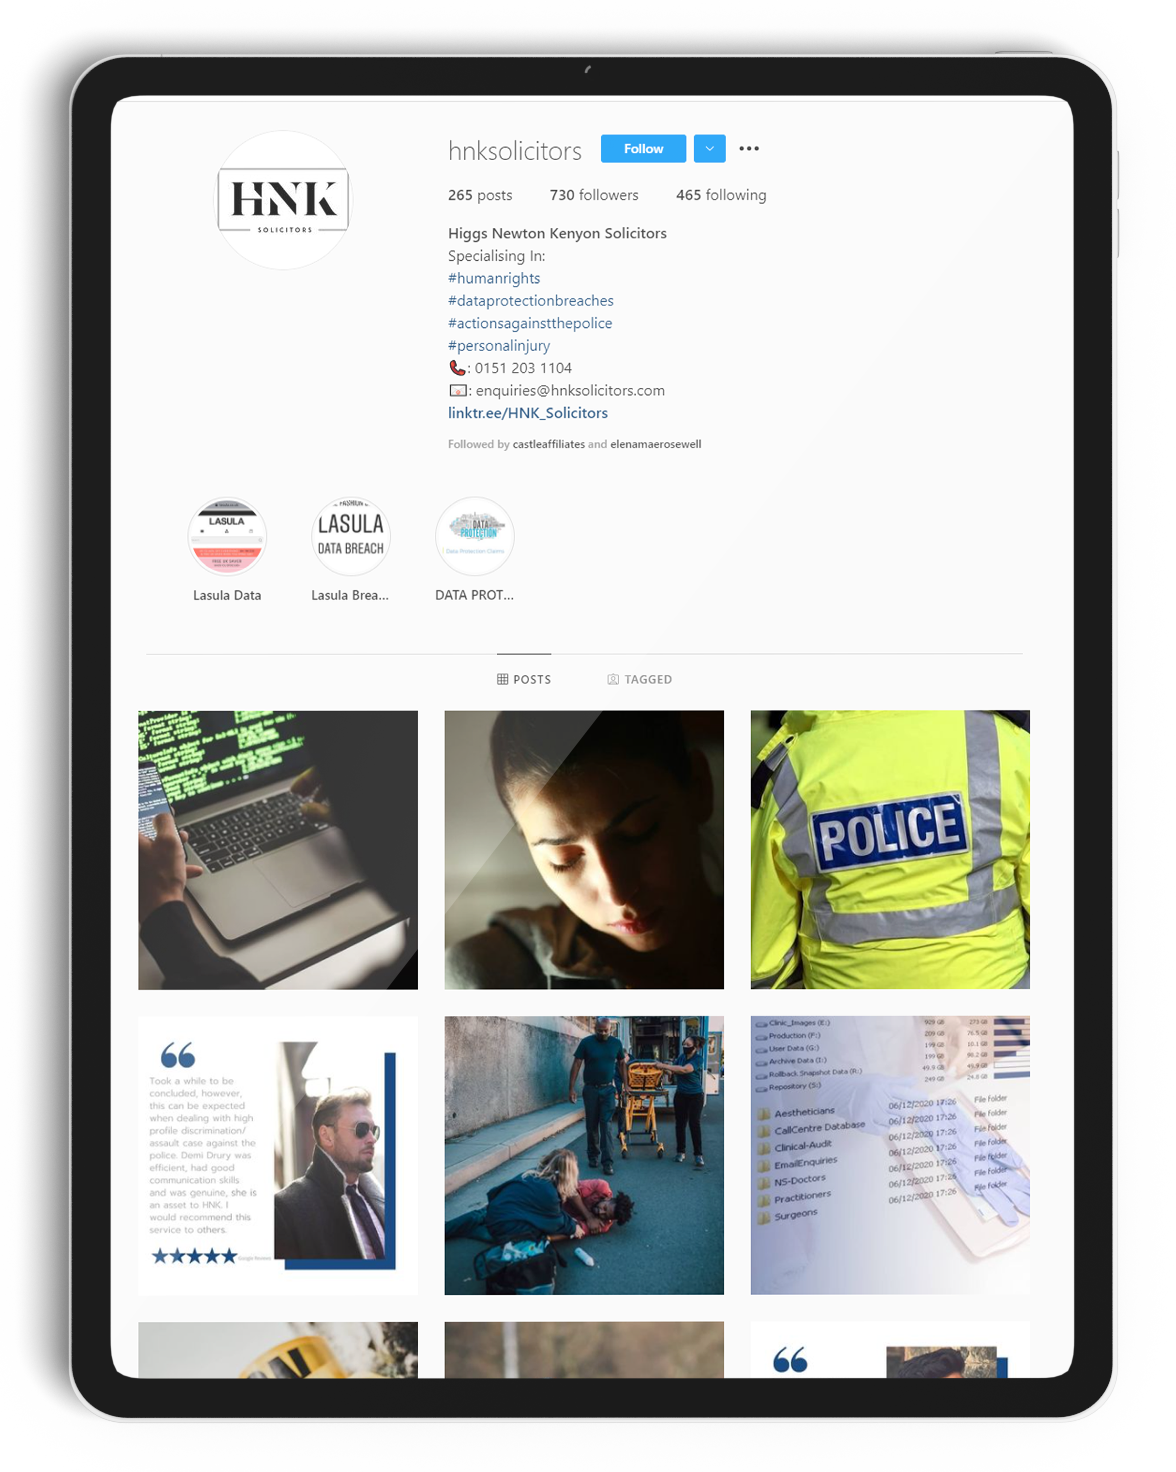 The HNK Instagram page displayed on an iPad.